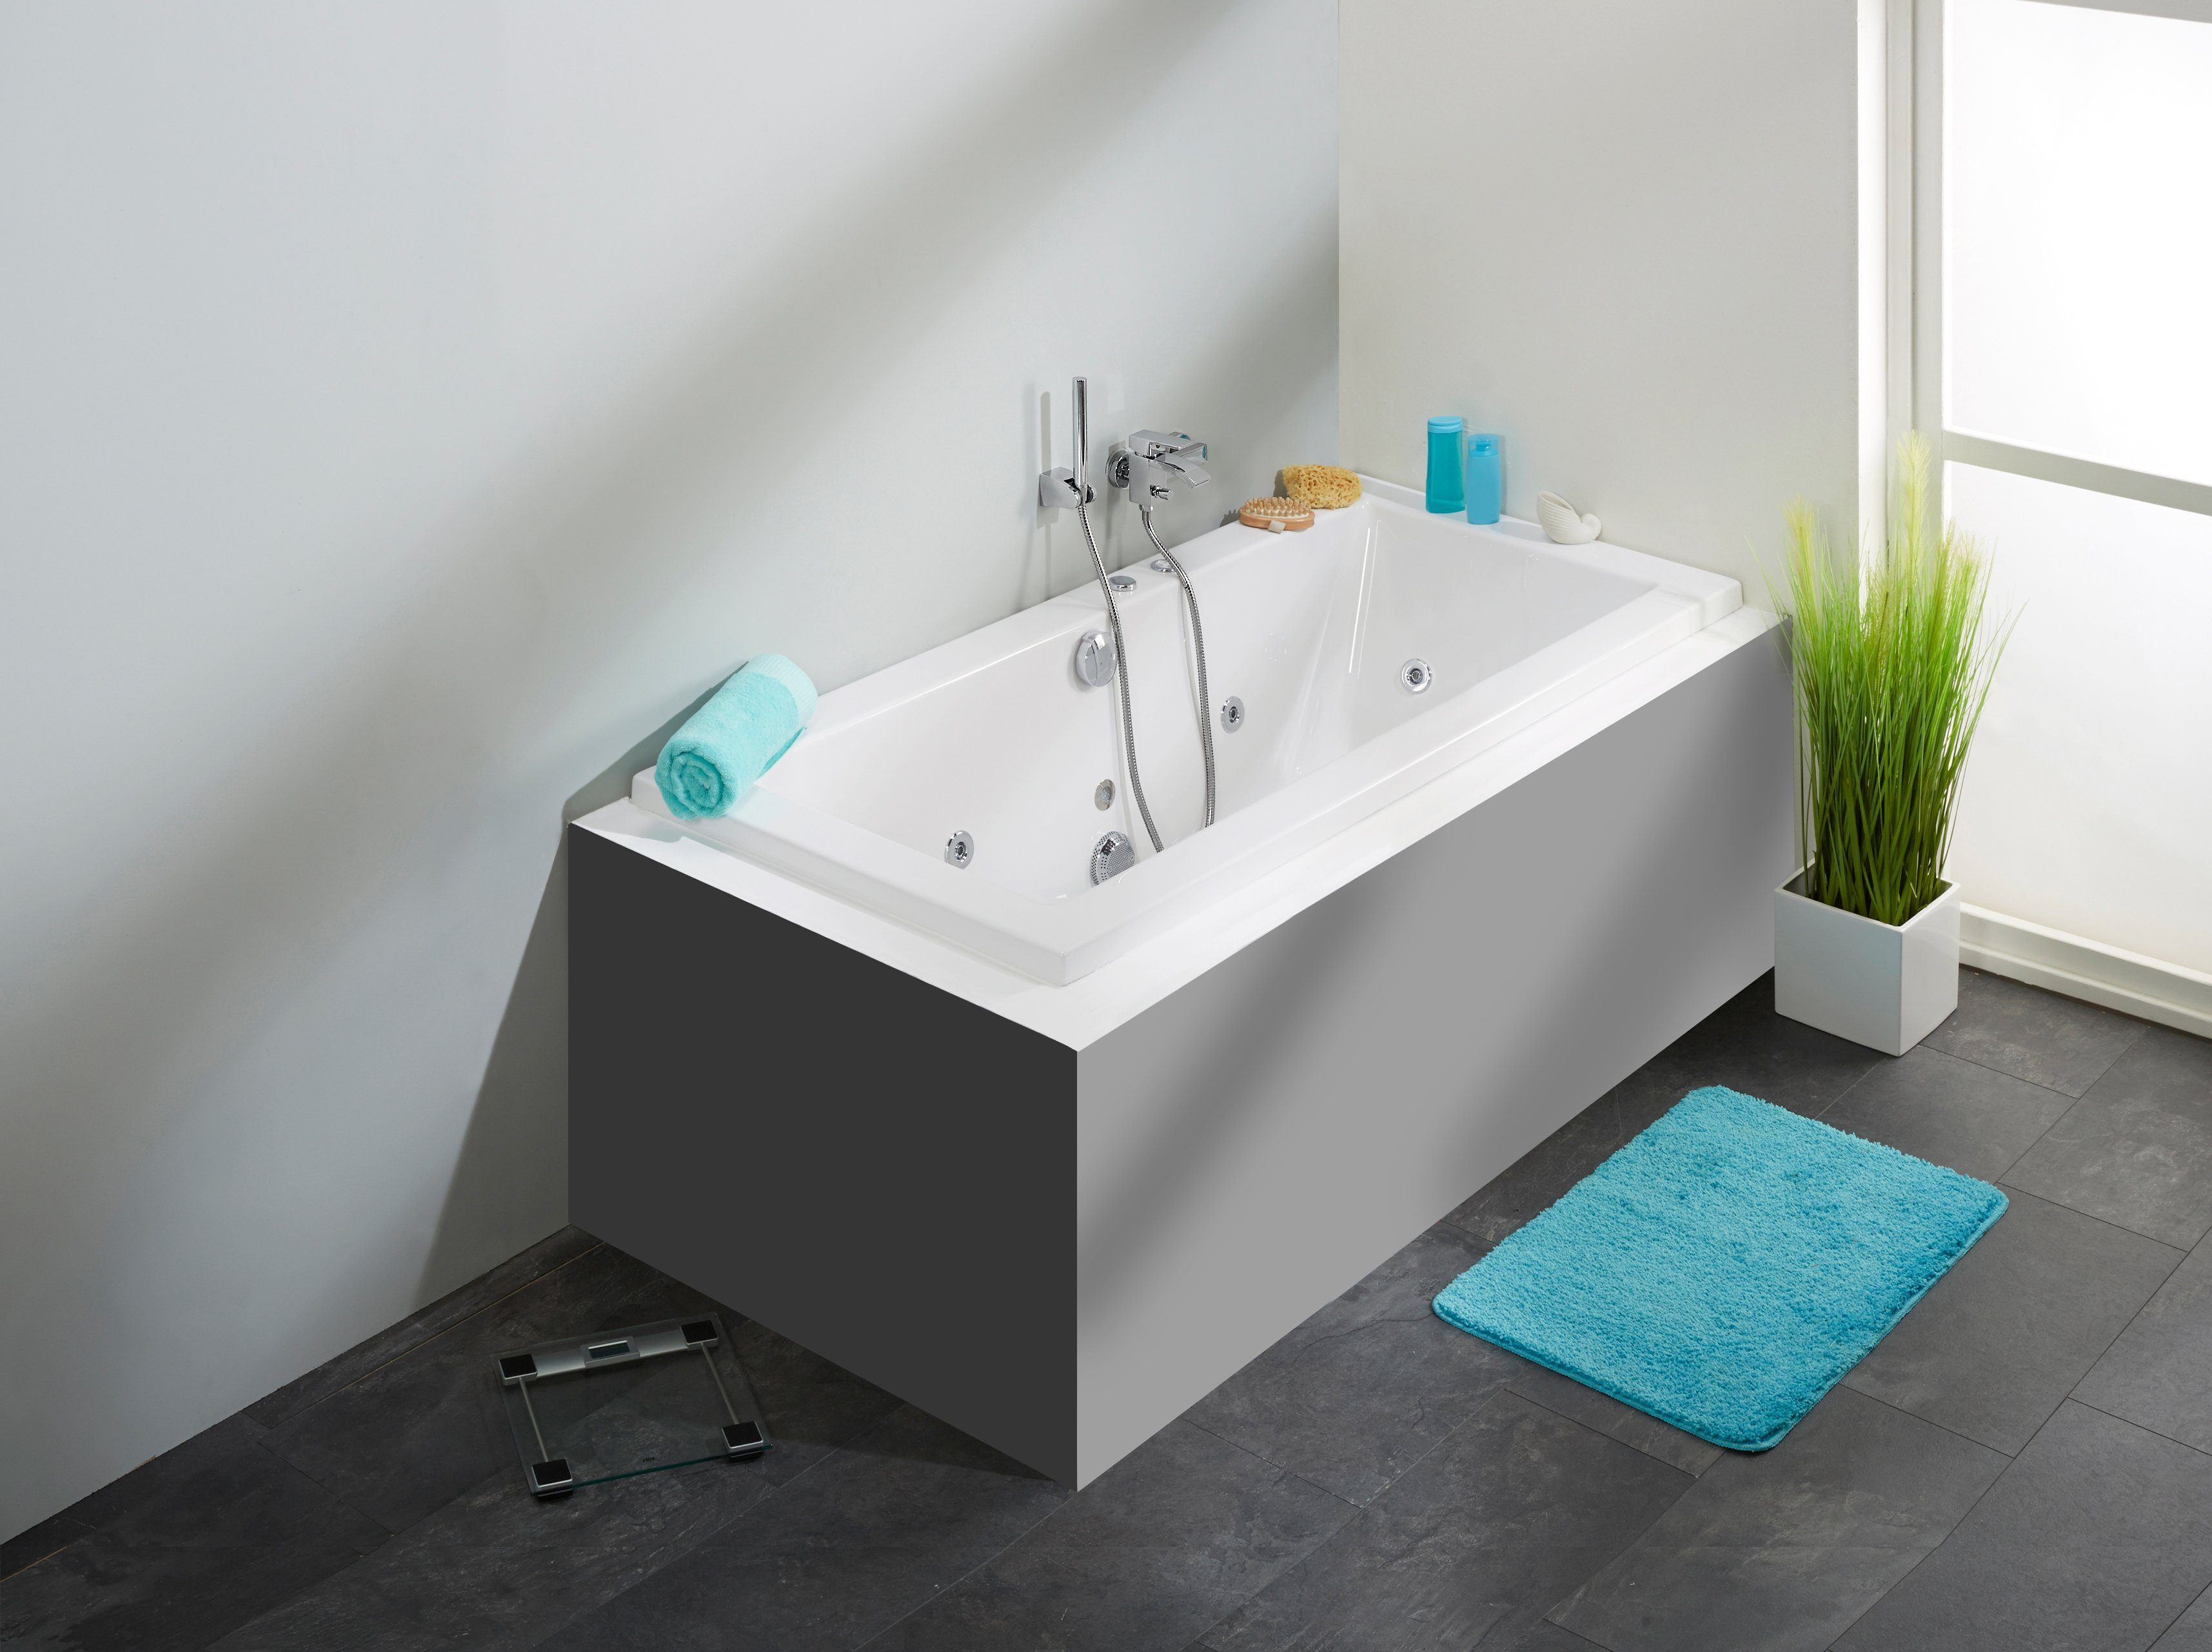 OTTOFOND Whirlpoolwanne »Cubic«, B/T/H in cm: 180/80/62,5; Whirlpool-System Premium